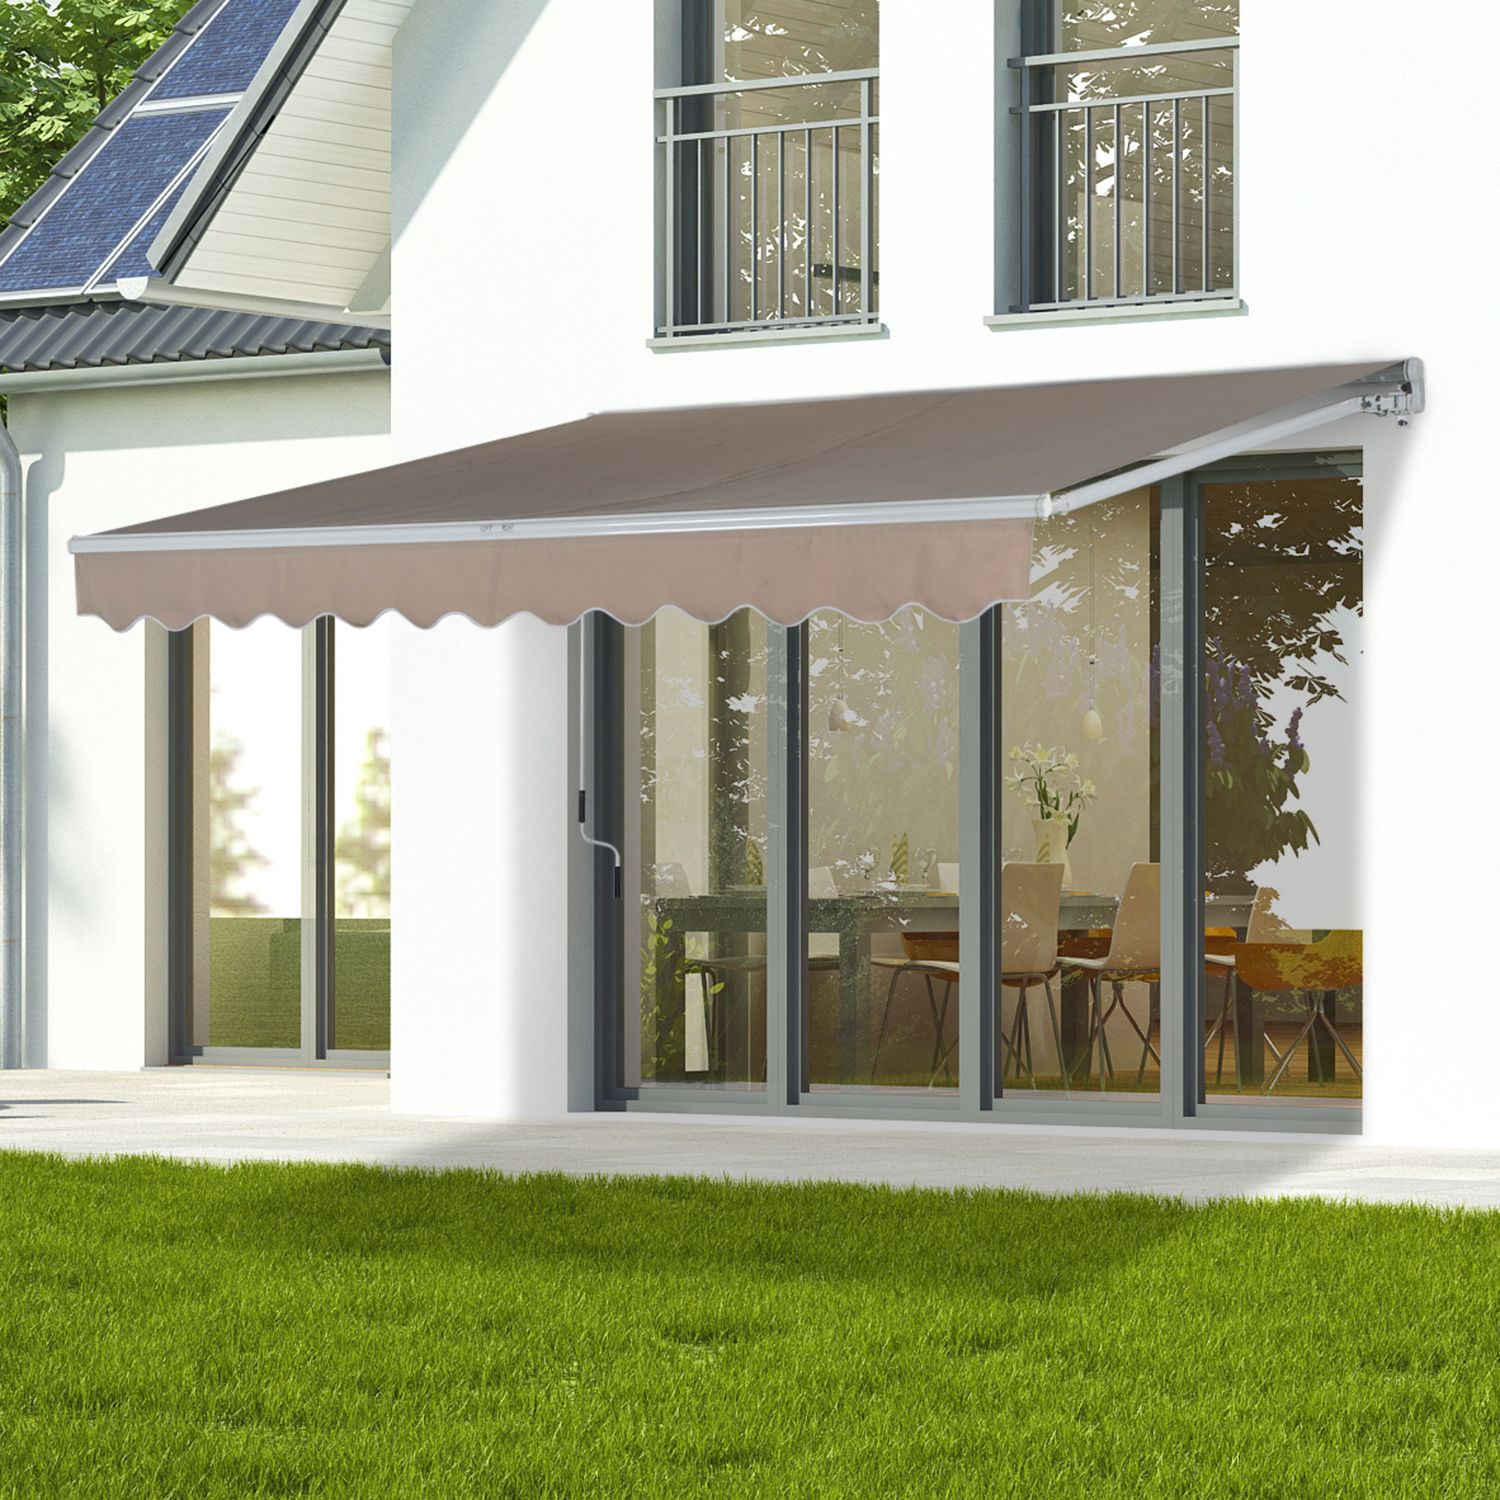 differences hdr outdoor retractable shade and solutions between brisbane sails awnings perth melbourne awning in sun